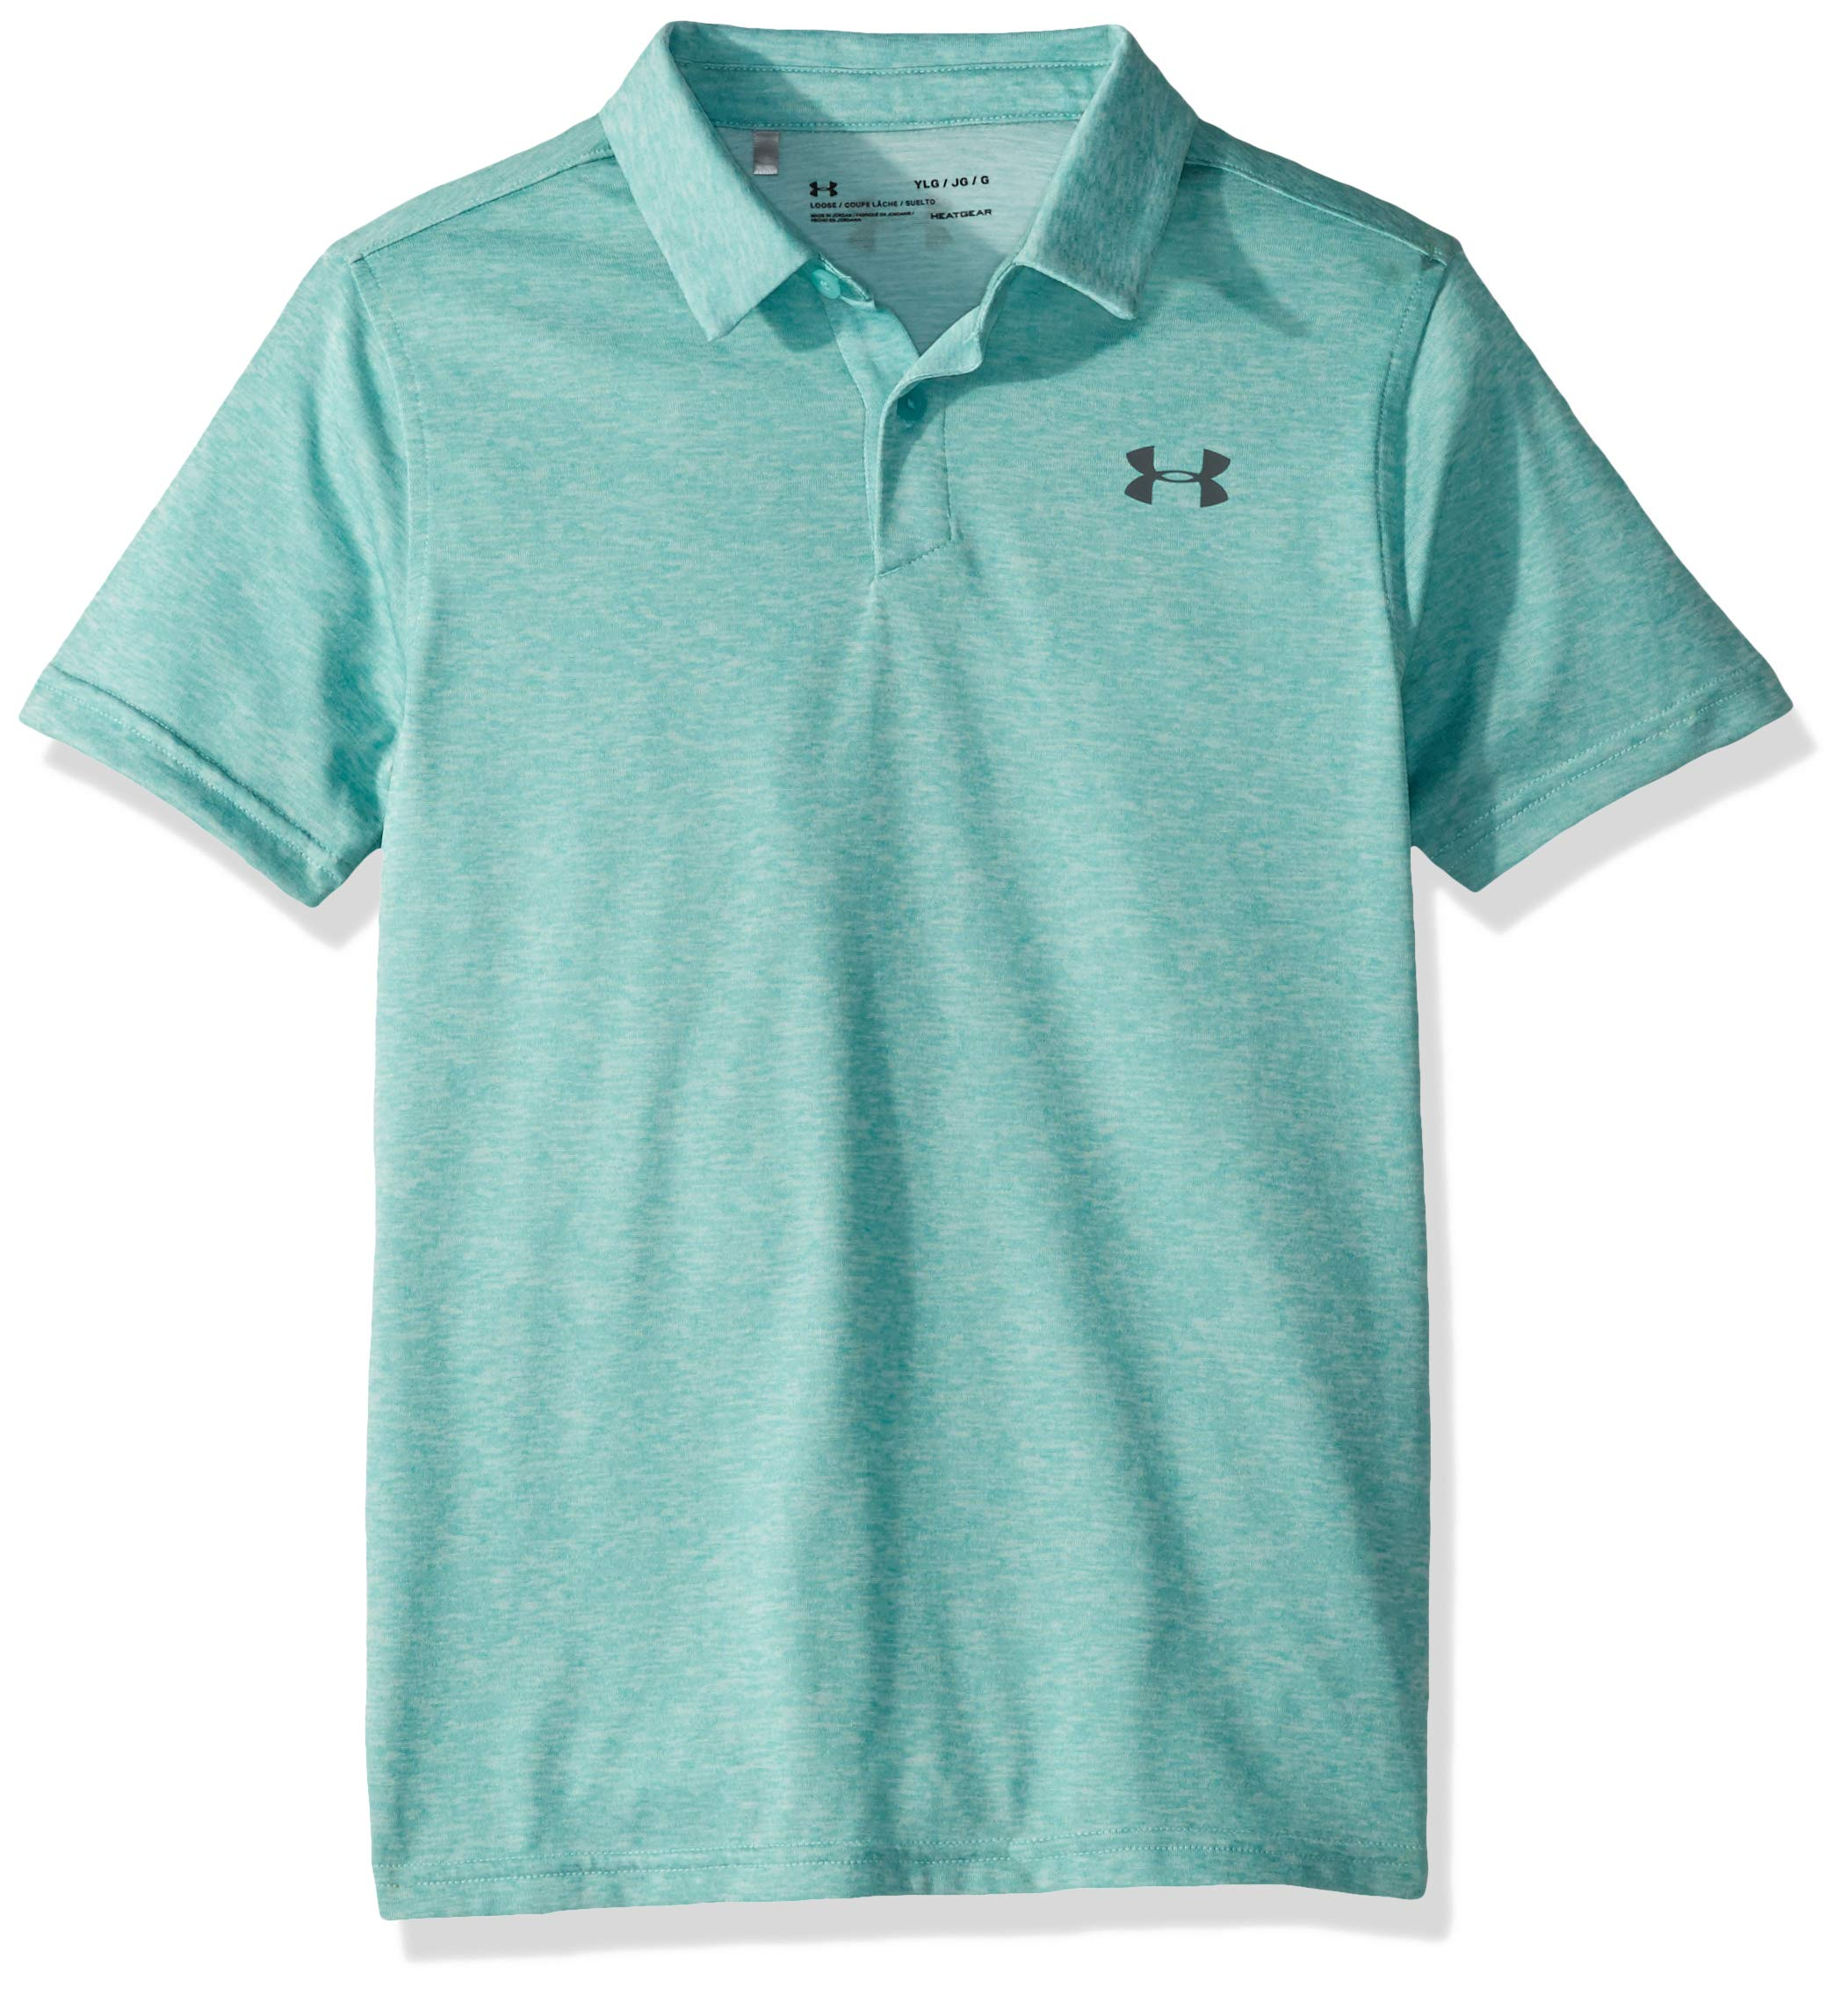 Under Armour Tour Tips Polo, Azure Teal Light Heather//Pitch, Youth Large